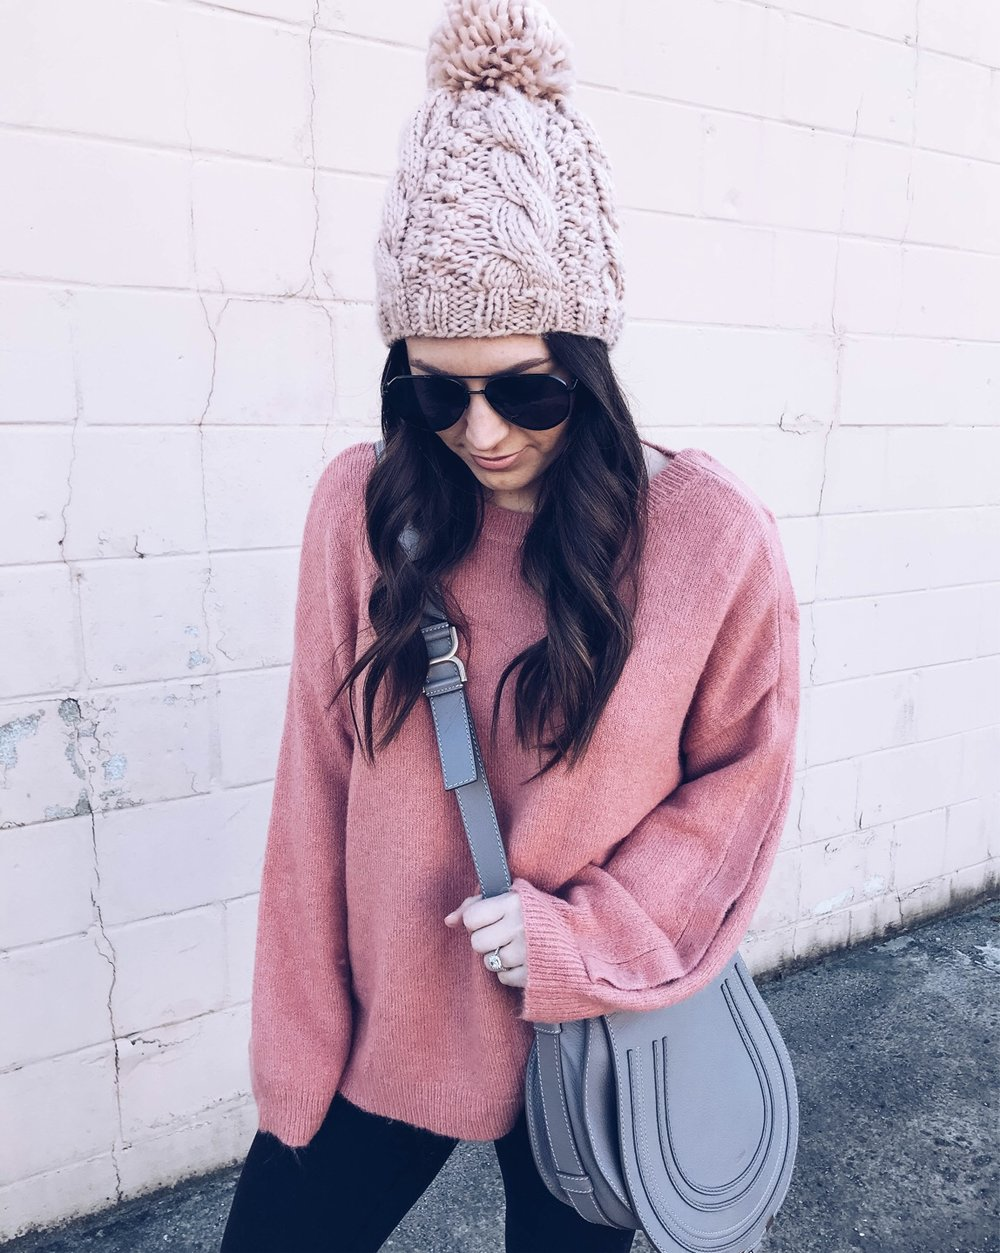 Instagram Round Up | Pine Barren Beauty | winter fashion, winter outfit idea, blush sweater & beanie, Chloe cross body bag, cozy outfit idea, cozy vibes